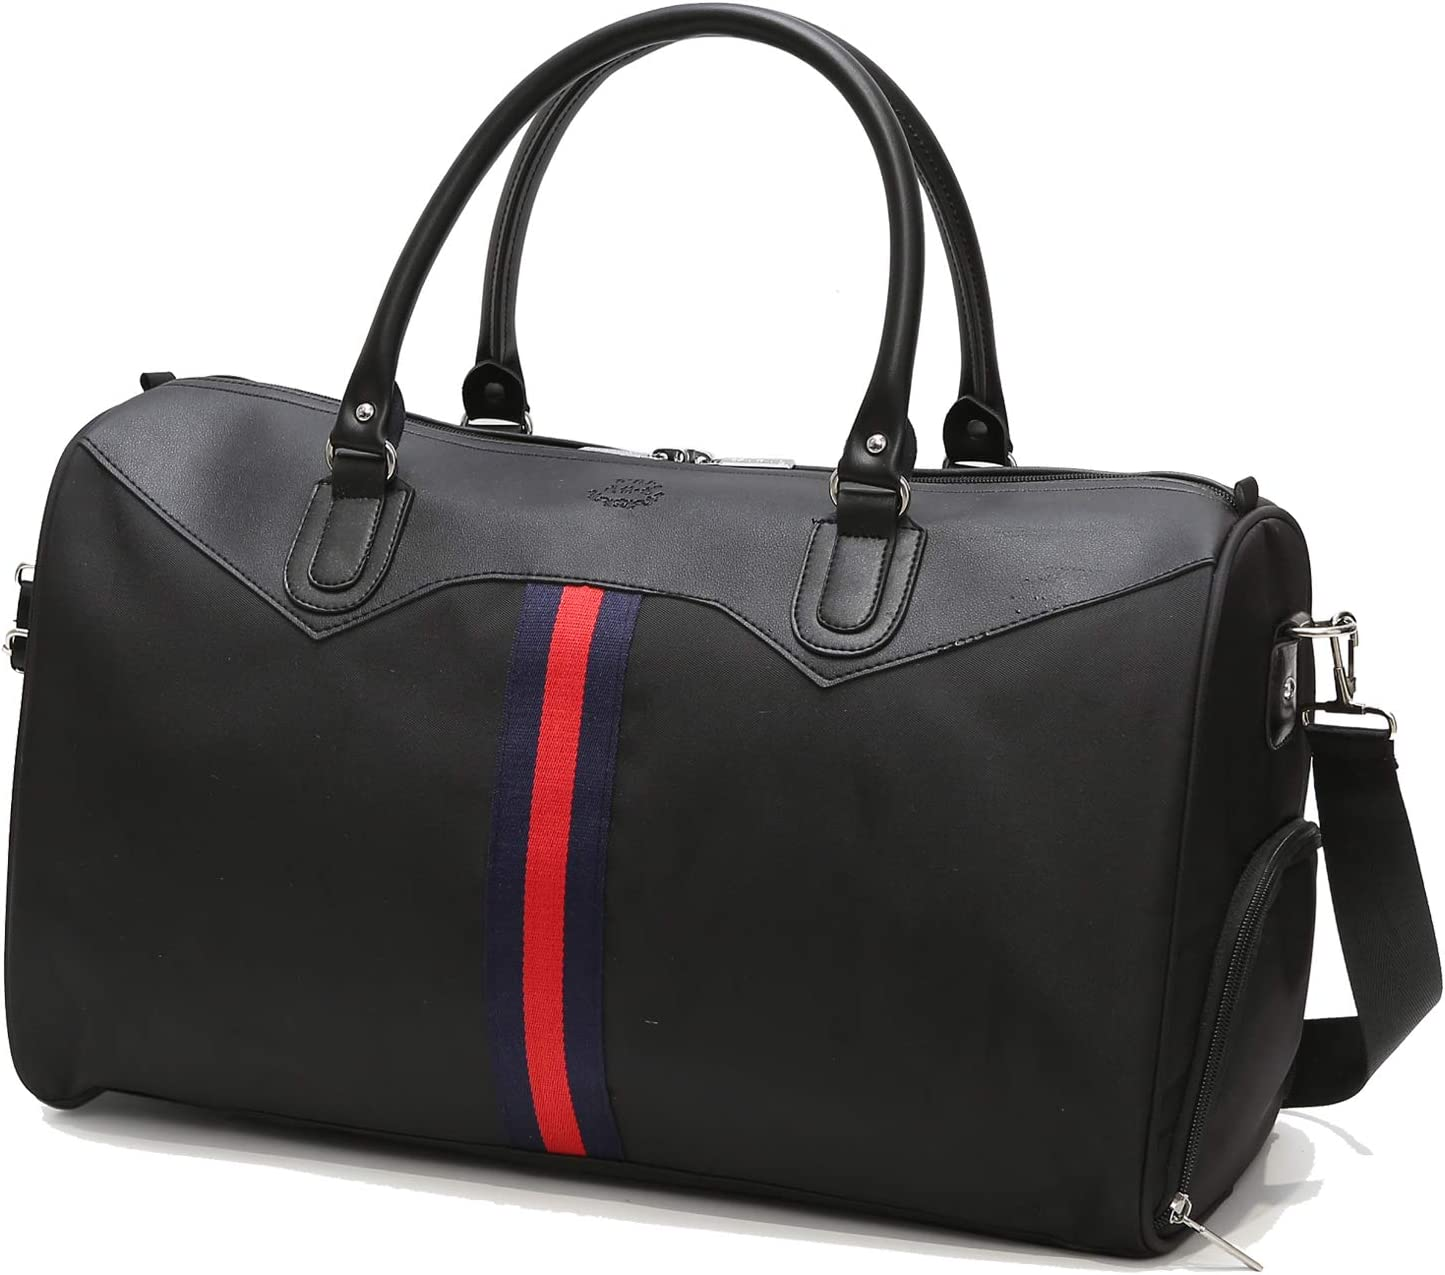 SYKT Duffle Bags Women Men Sports Gym Bag with Shoes Compartment Multi-use Travel Duffel Bag